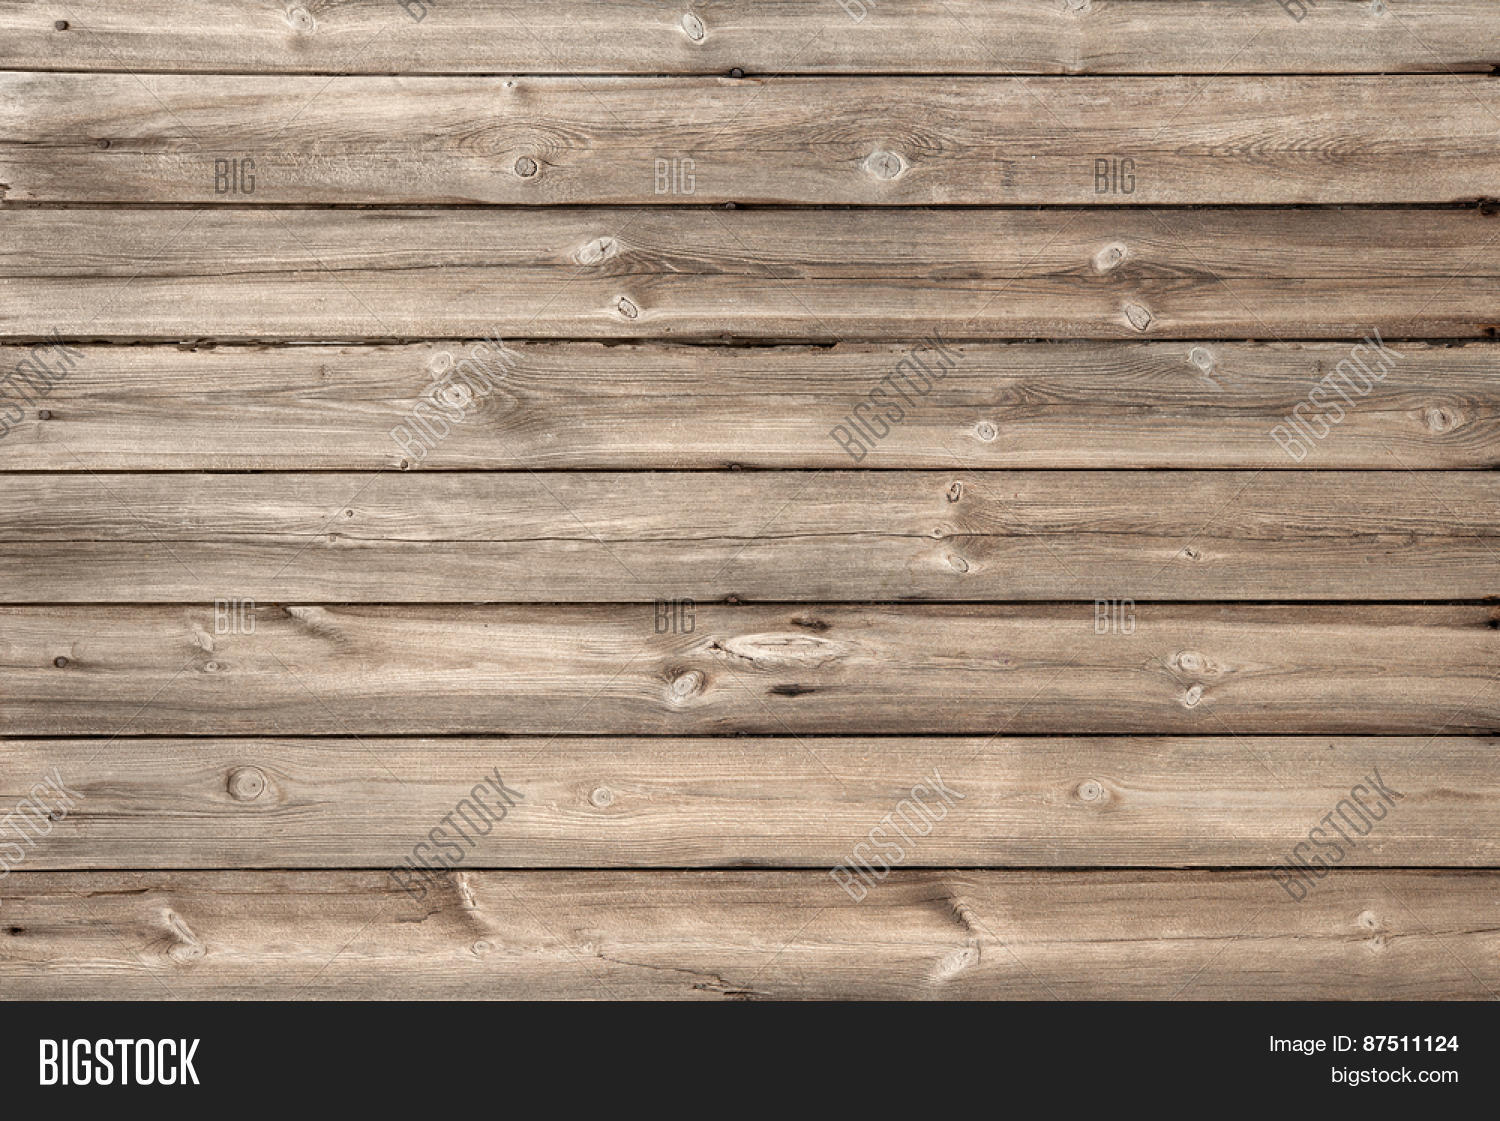 Wood Plank Background ~ Wood background texture of wooden planks stock